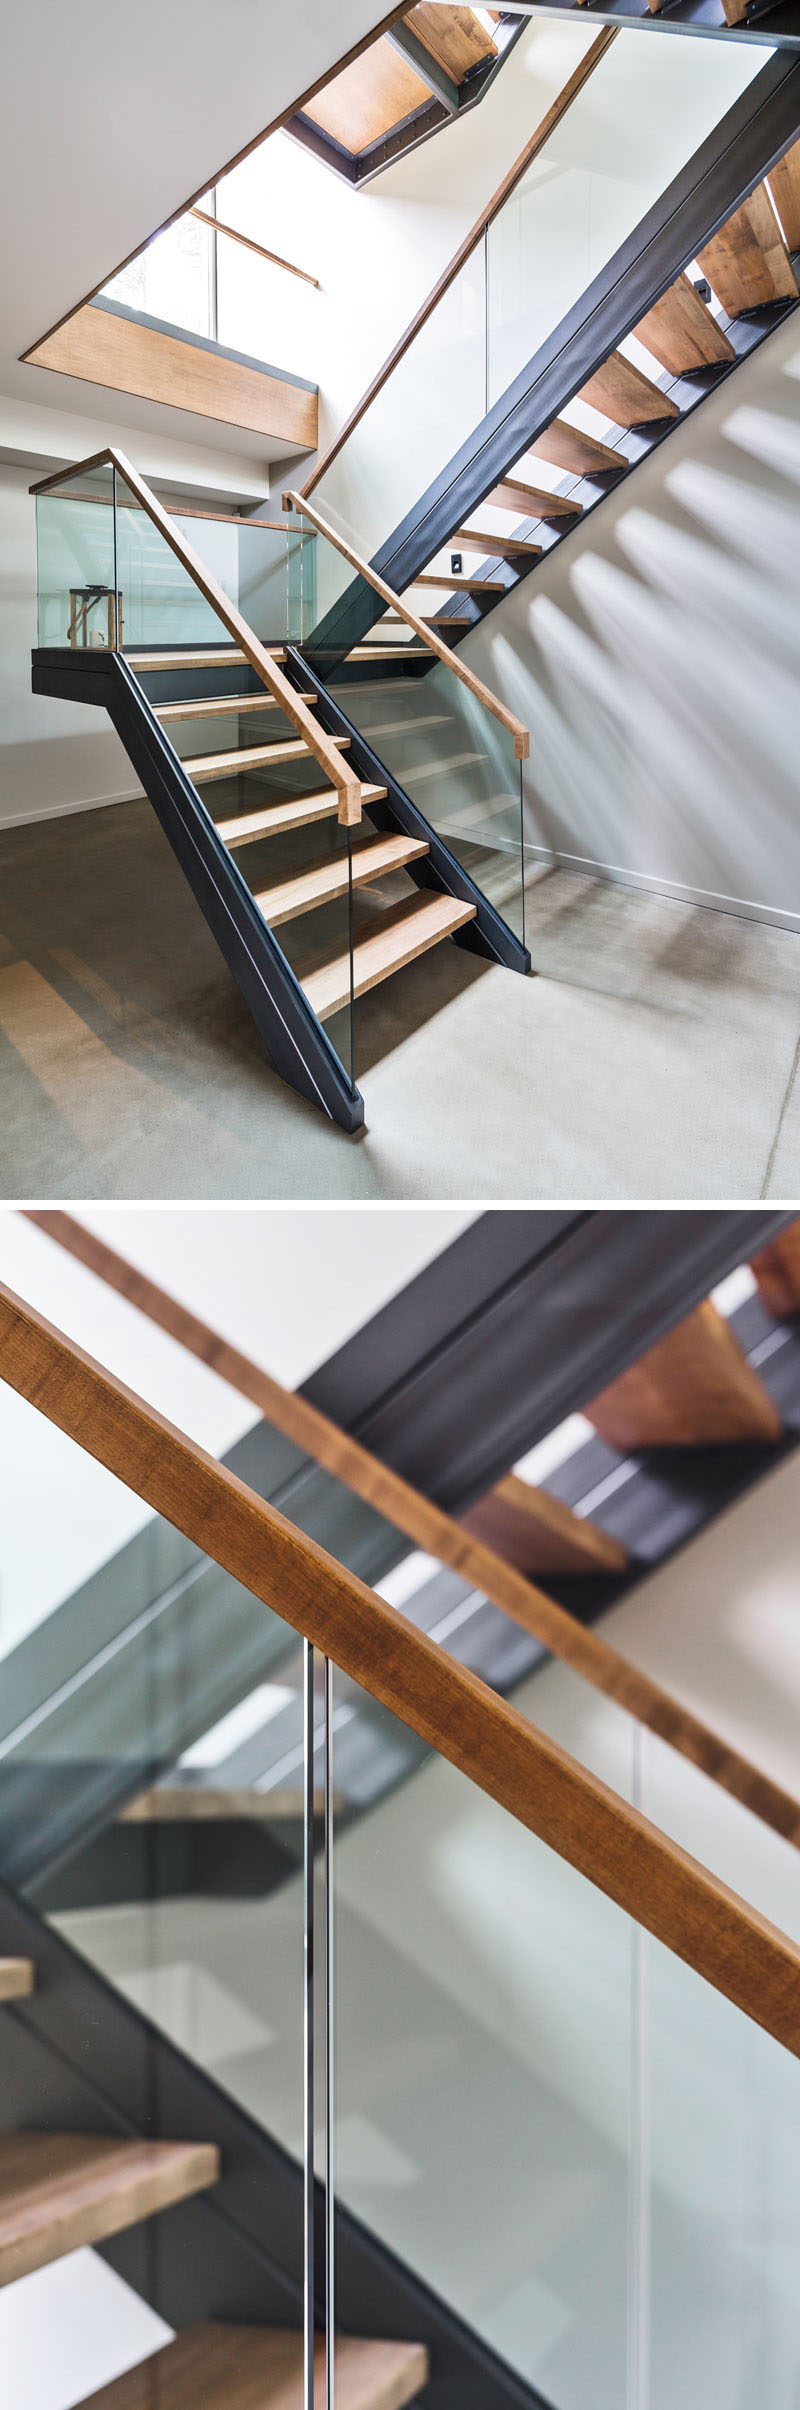 These stairs in a Canadian home use wood, steel and glass to create a contemporary look.